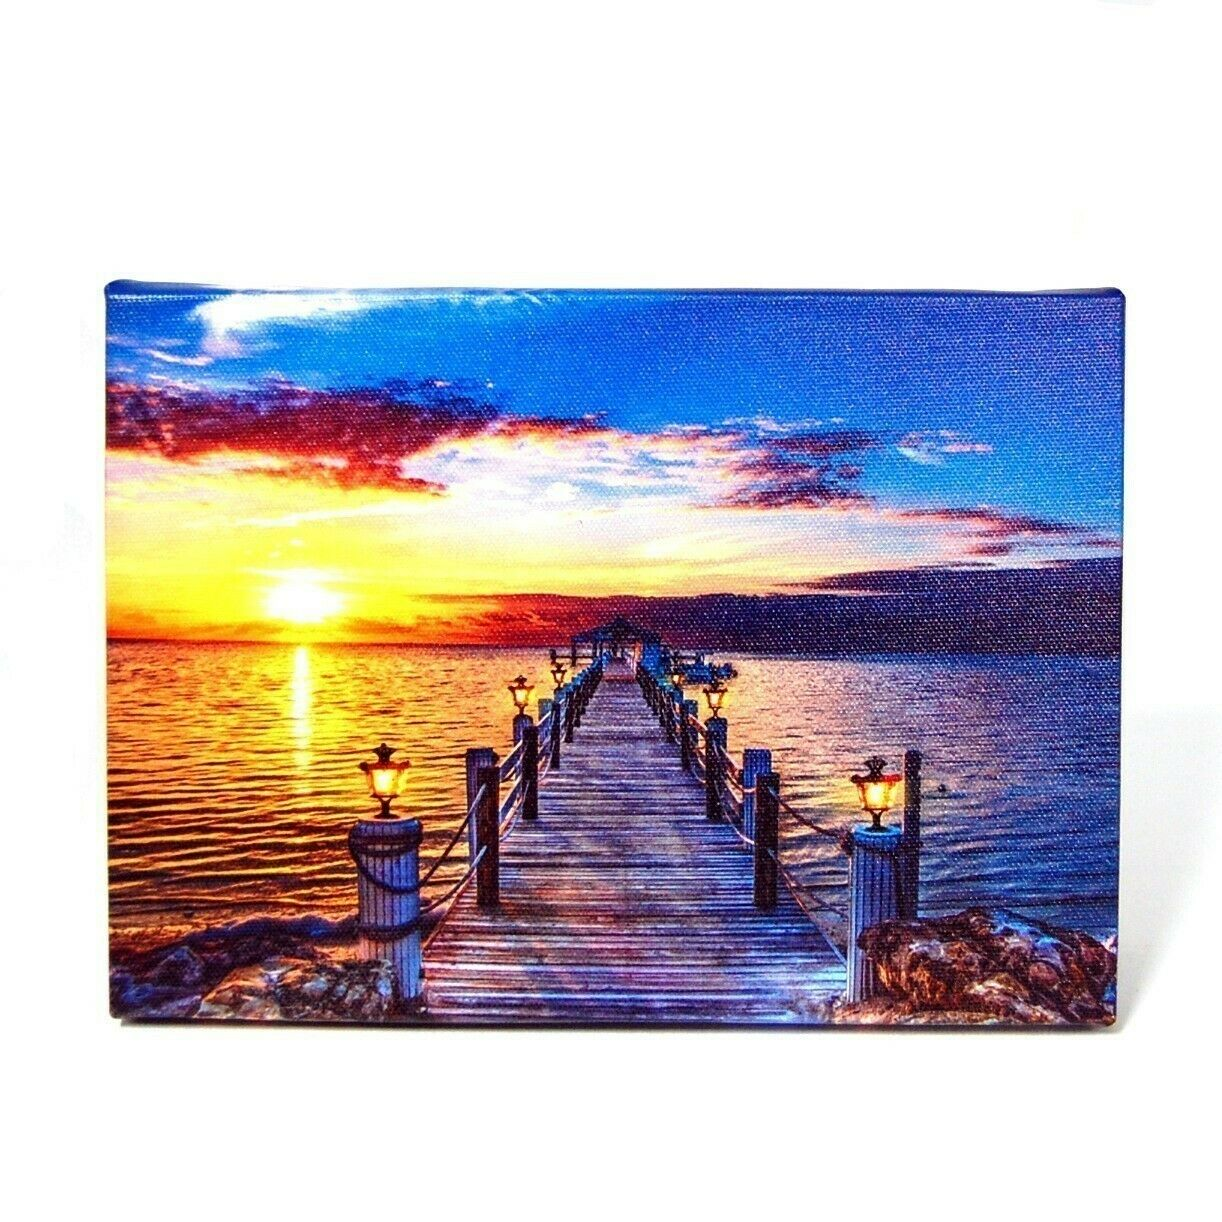 Wooden Bridge at Dawn LED Light Up Lighted Canvas Picture Wall or Tabletop Art